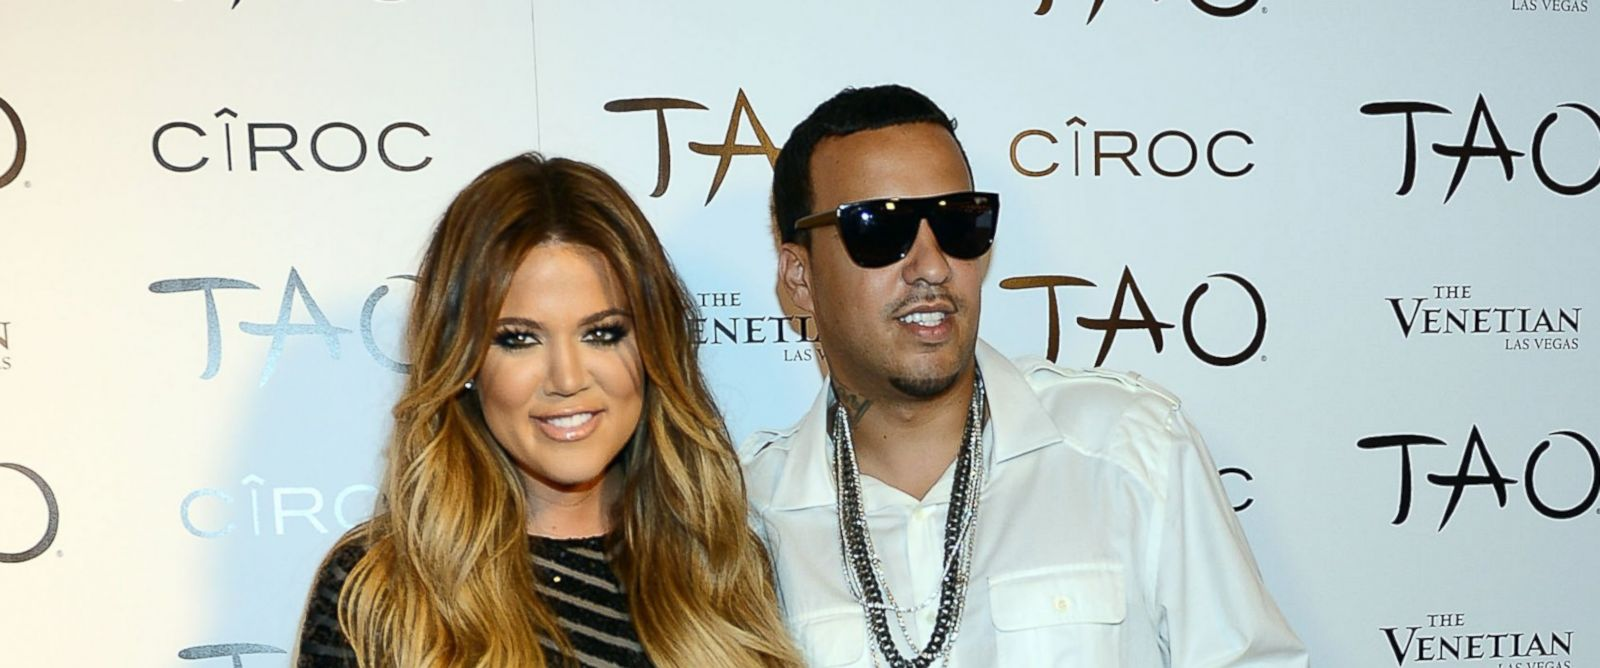 PHOTO: Khloe Kardashian and French Montana arrives at Khloe Kardashians 30th birthday party at TAO Nightclub on July 4, 2014 in Las Vegas, Nevada.